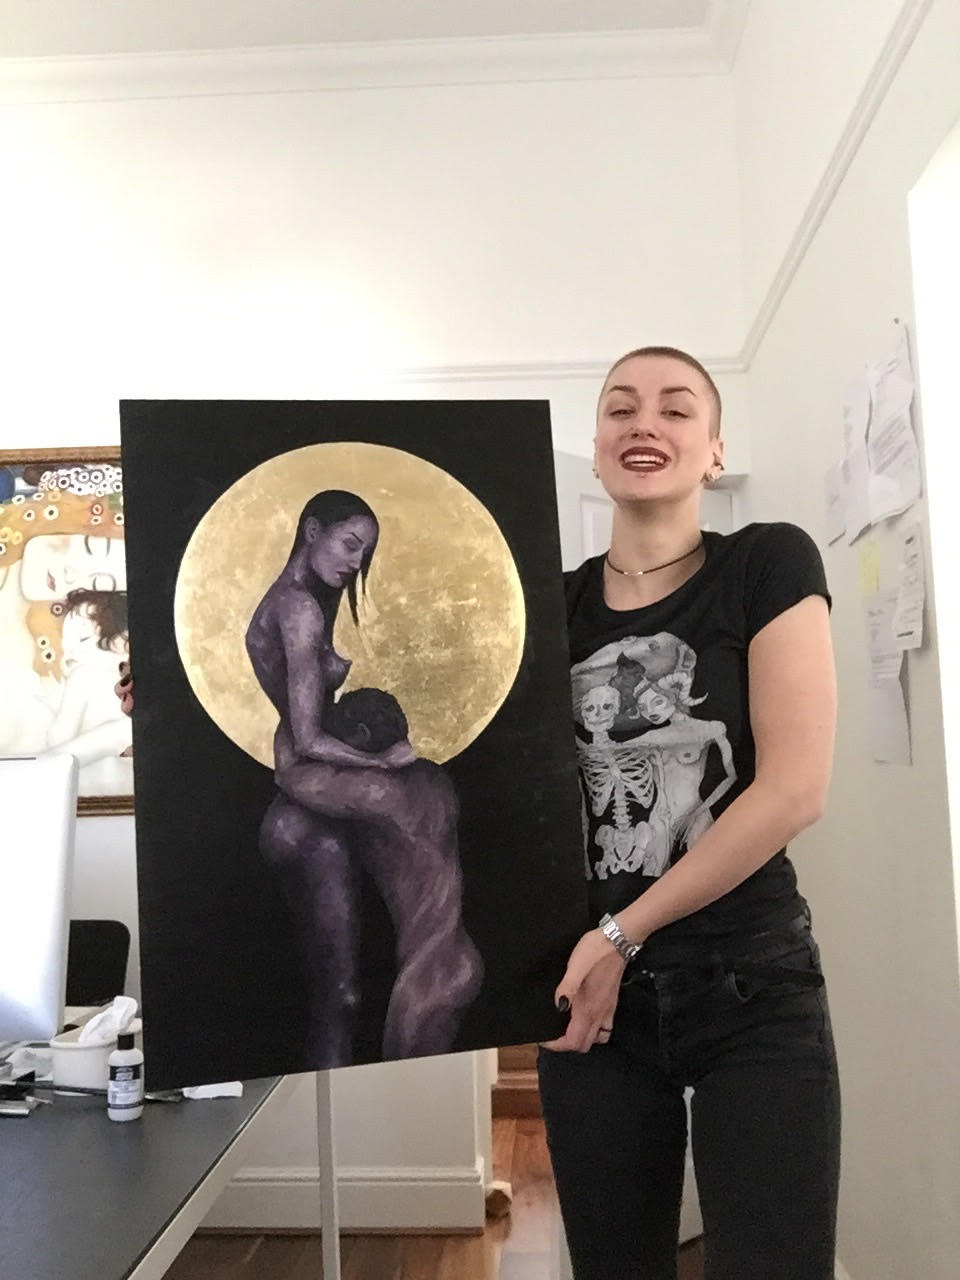 me and the painting.jpg